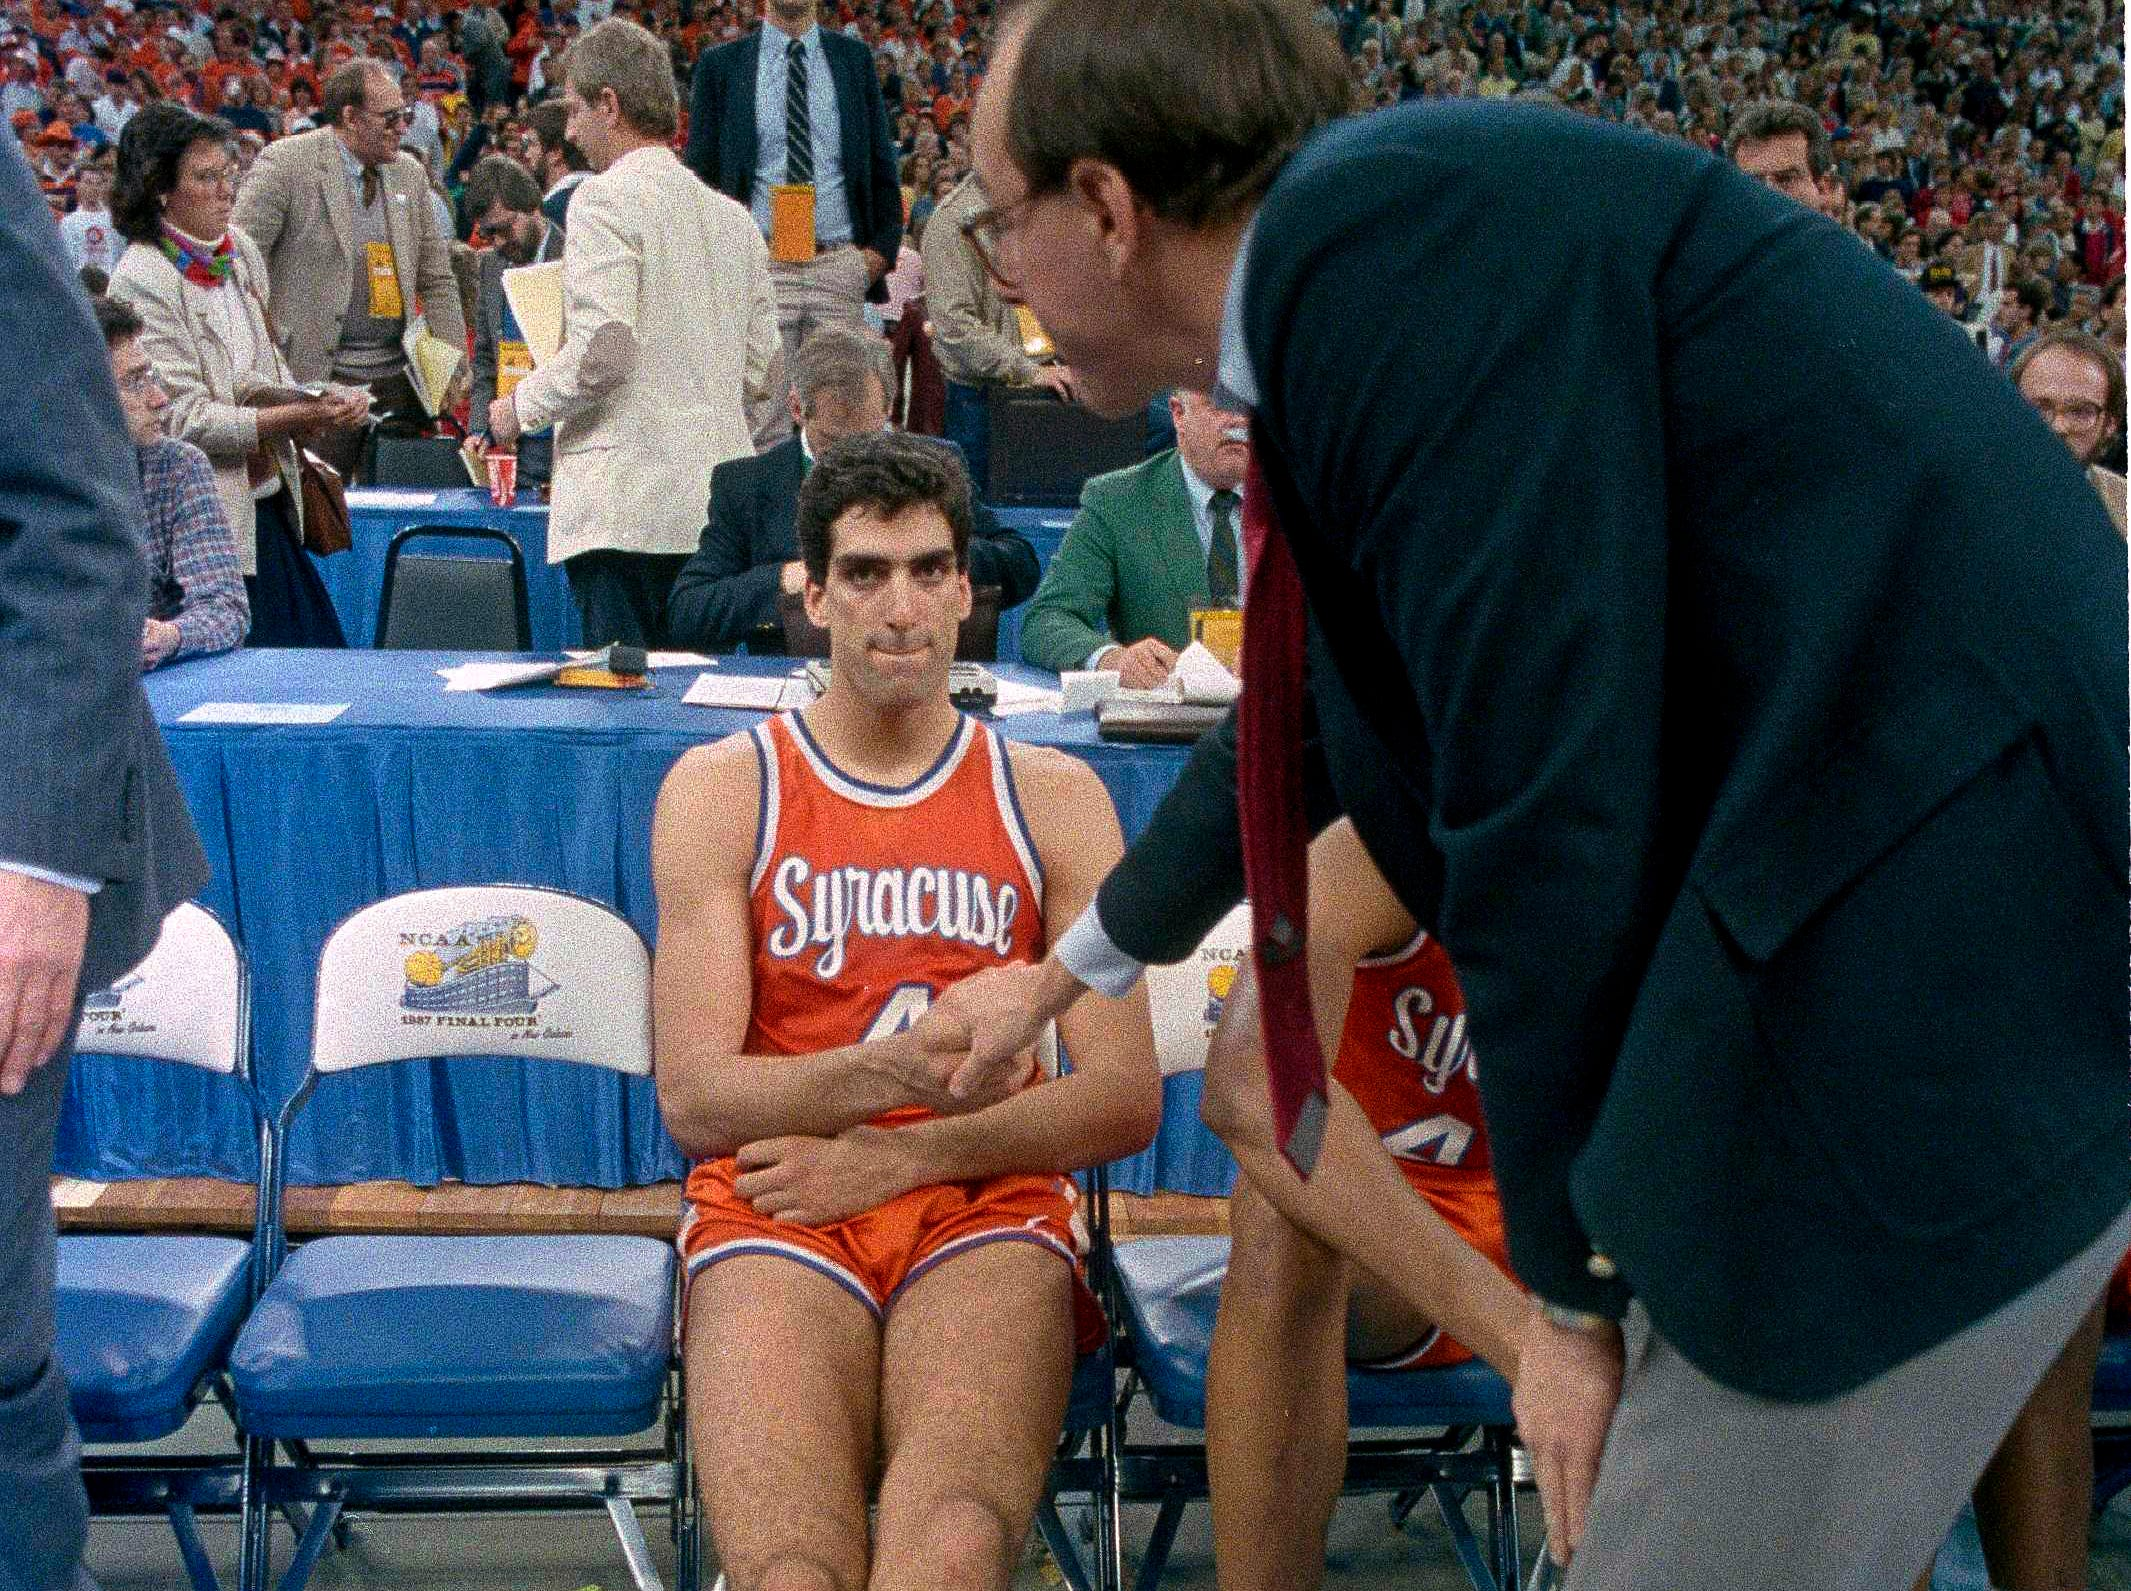 1987: Syracuse coach Jim Boeheim shakes the hand of player Rony Seikaly after they lost the NCAA Championship game to Indiana, 74-73 in New Orleans Monday, March 30, 1987.